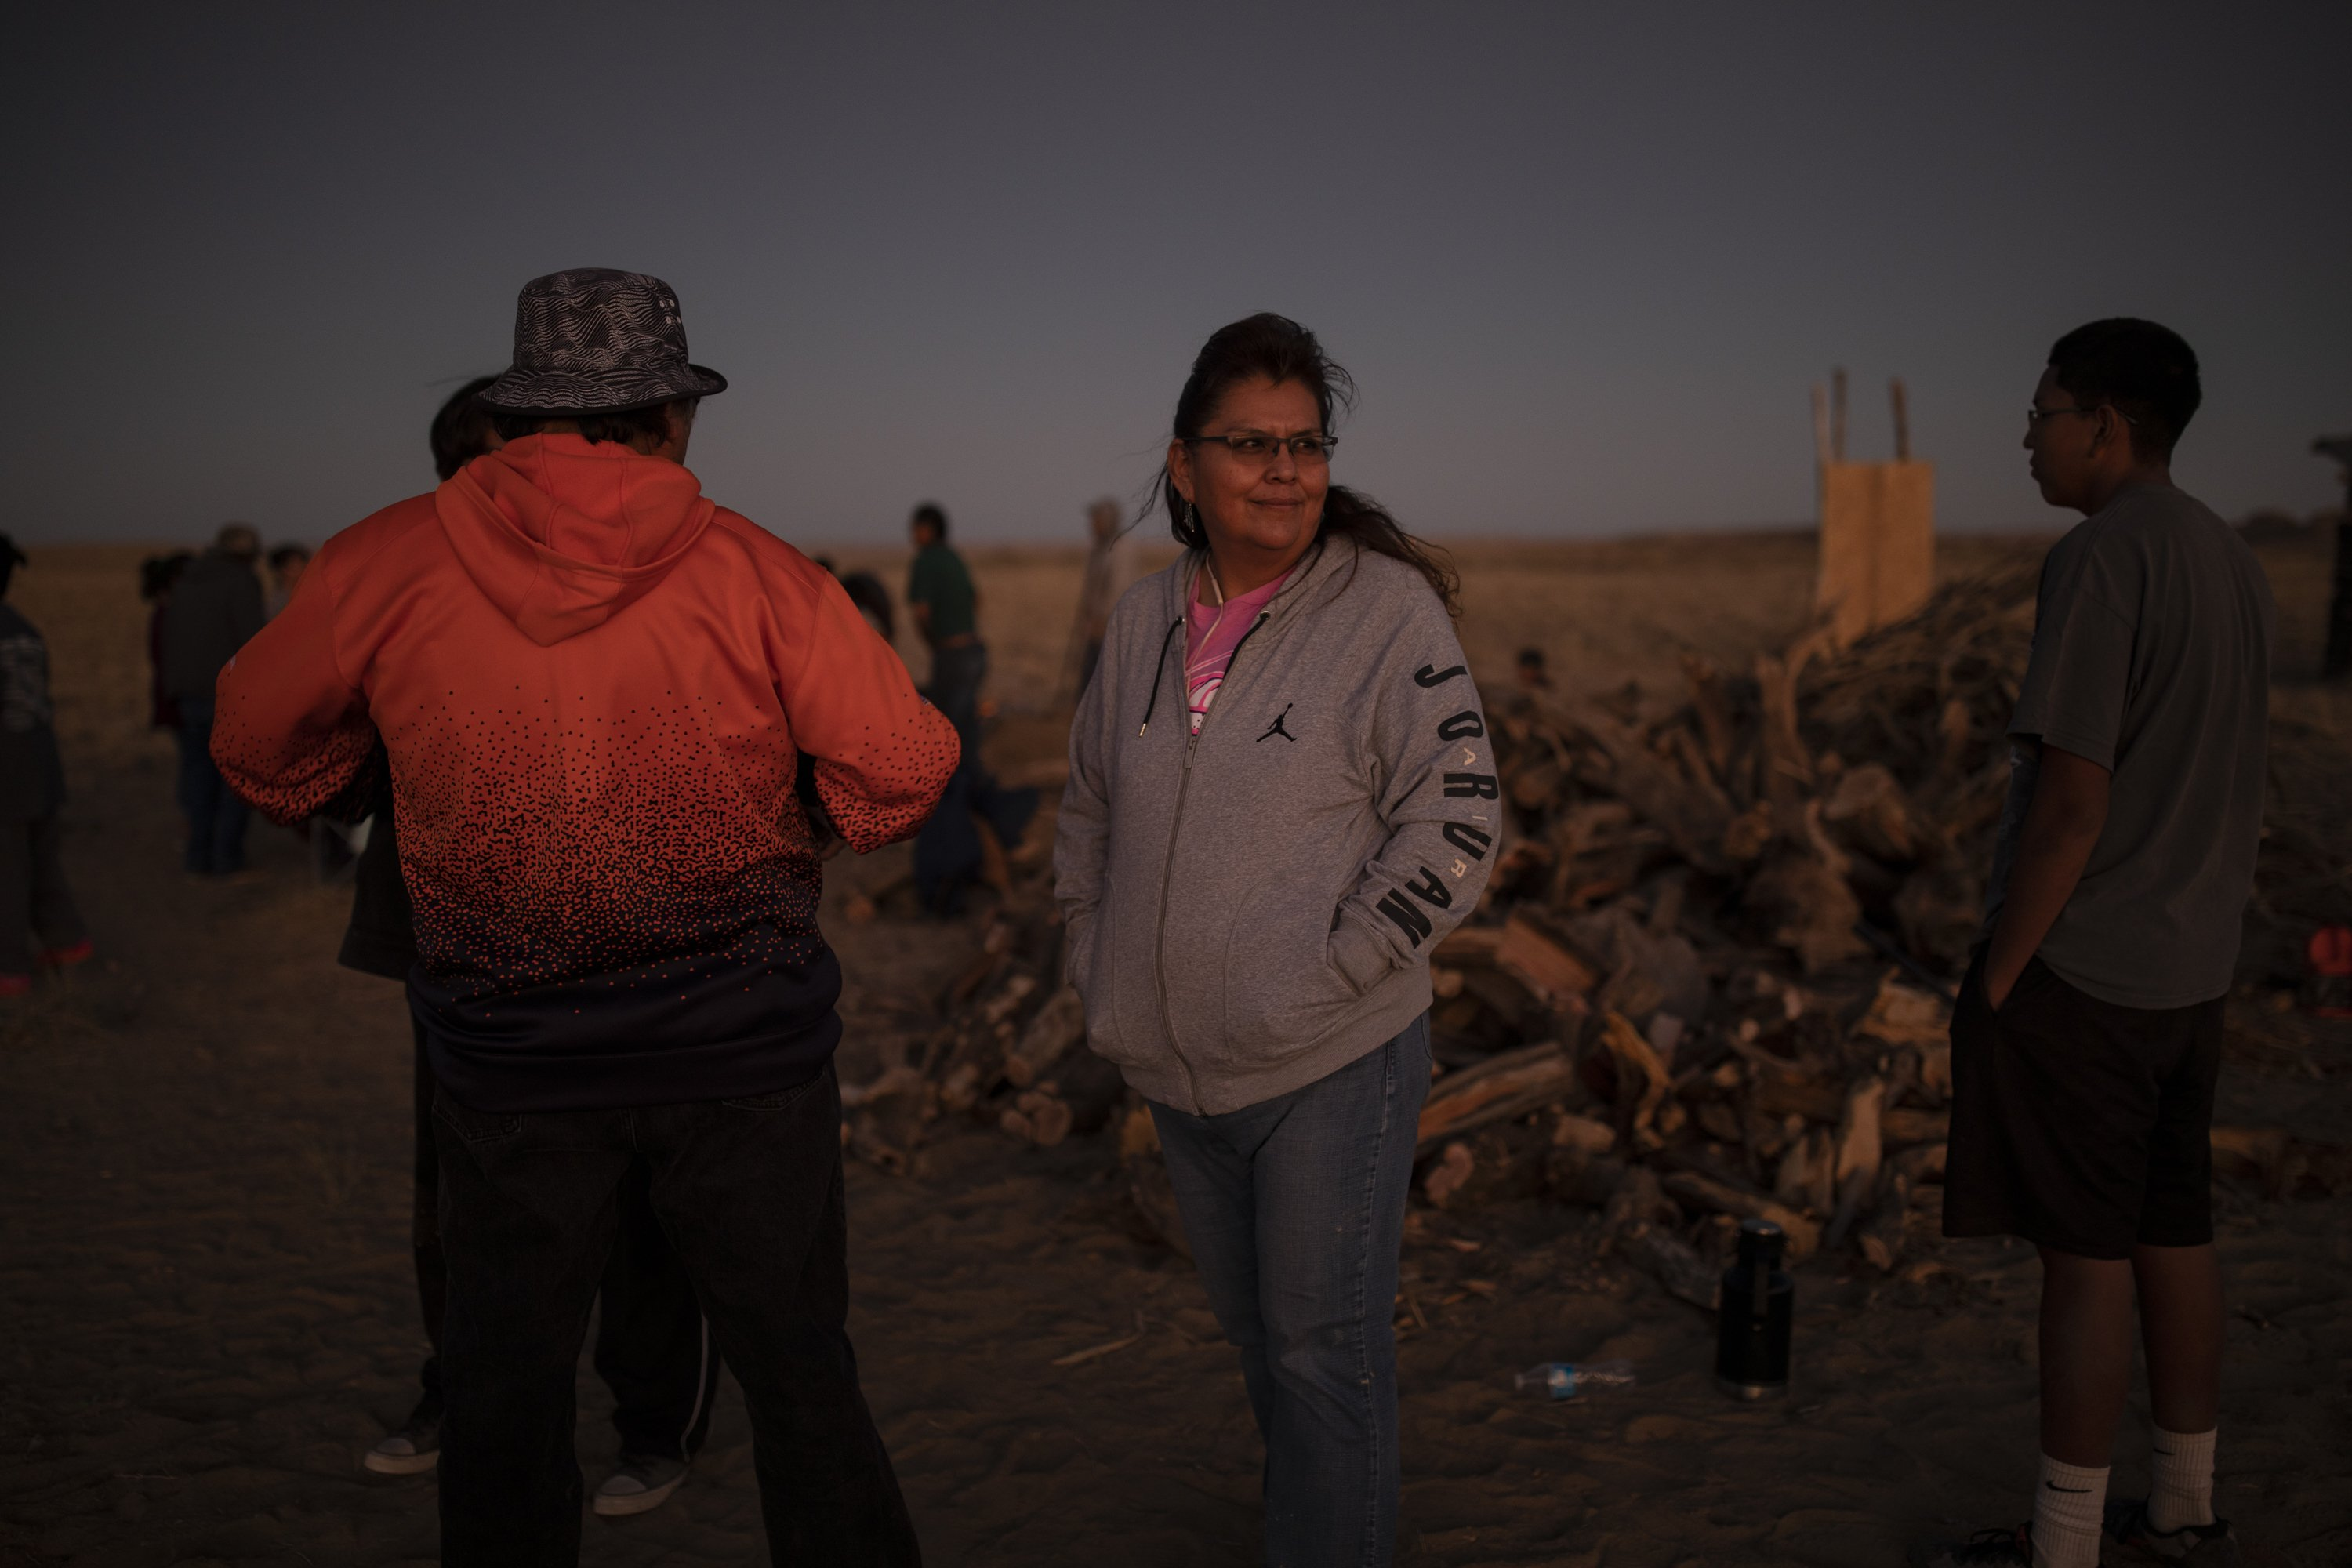 Jeanise Livingston attends a coming of age ceremony for a family member outside of Gallup, NM on October 26, 2019.